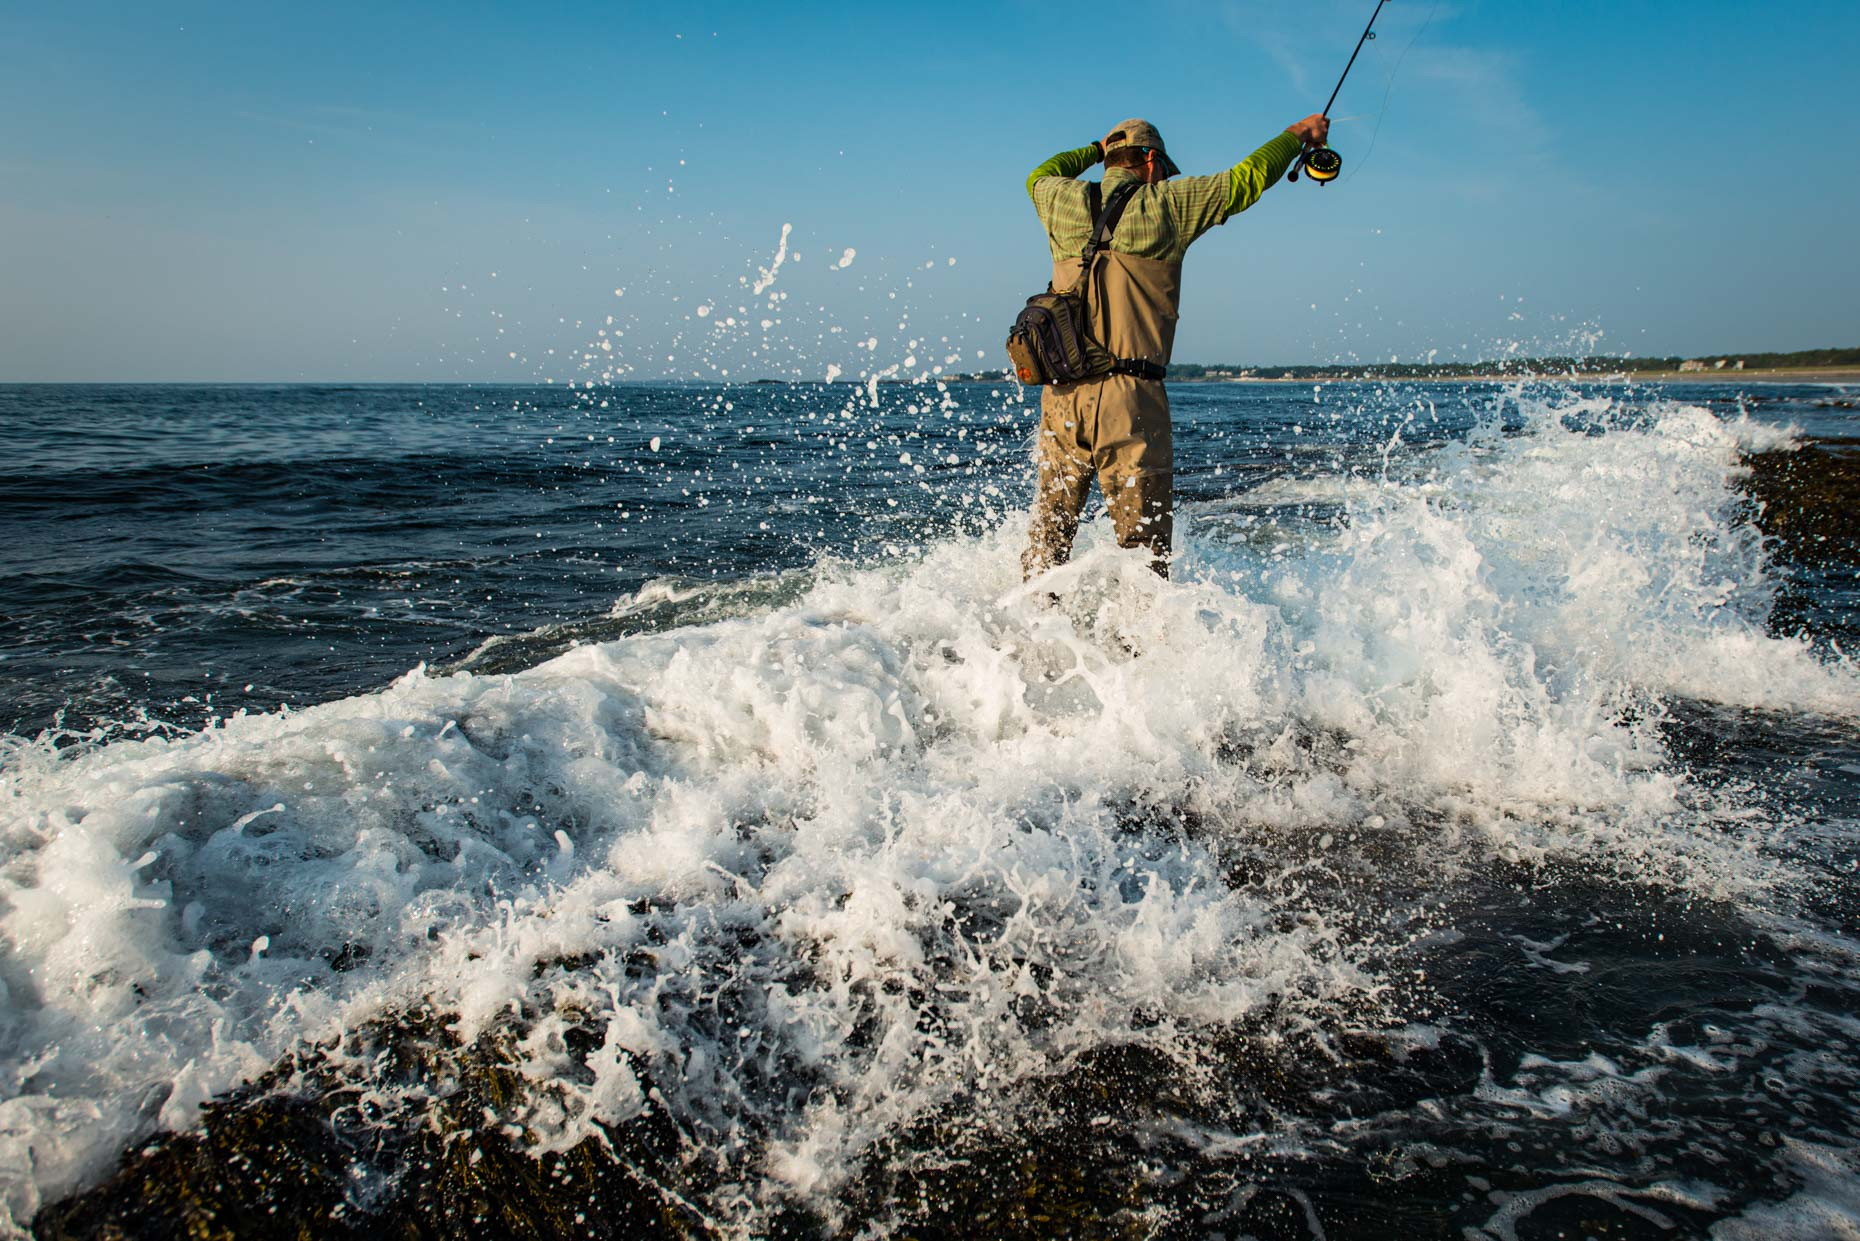 Fly fishing in the surf of Maine